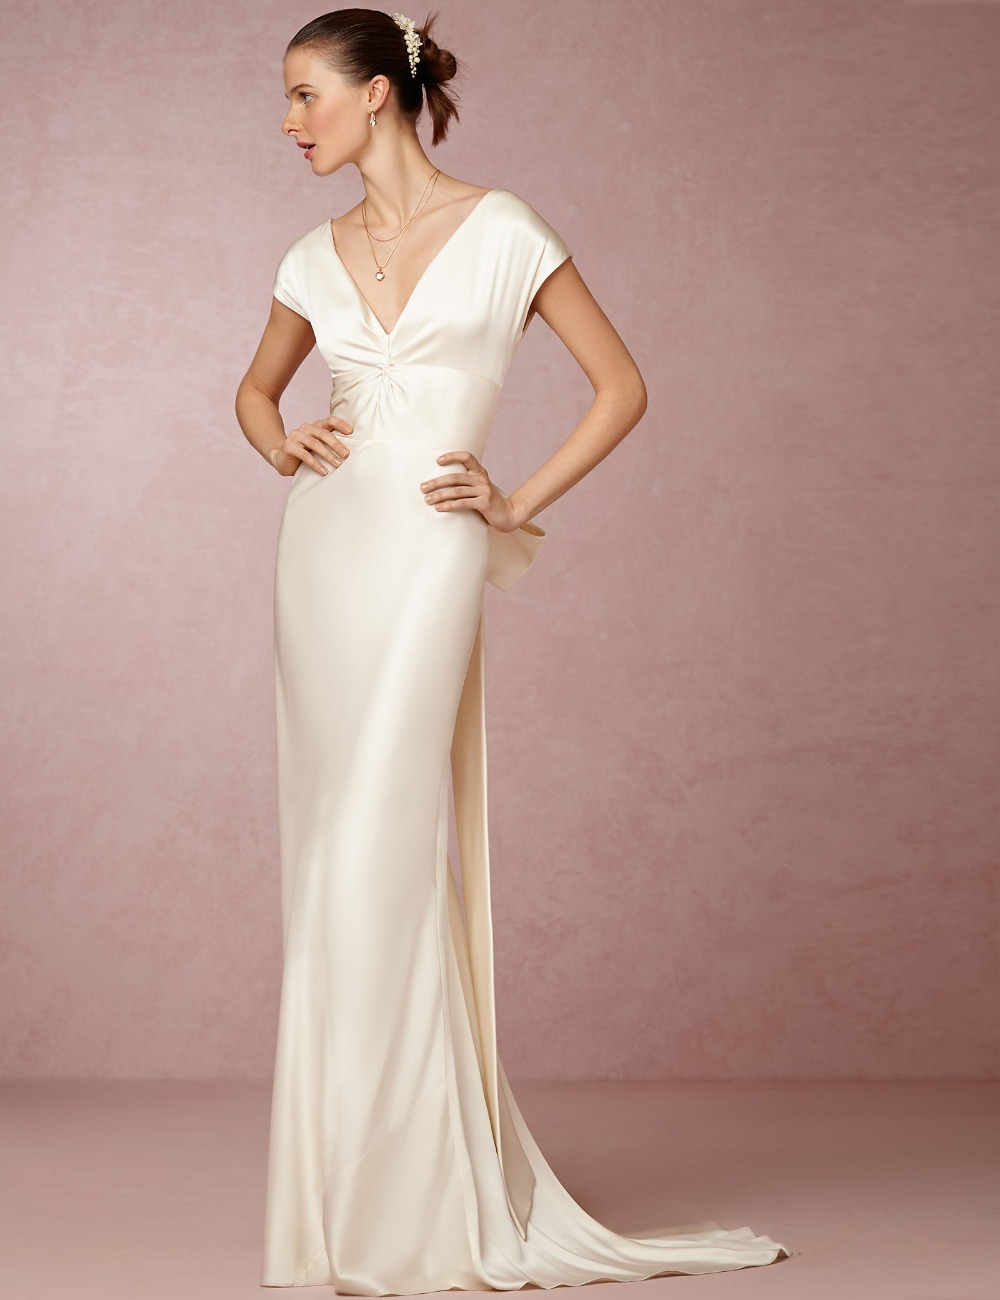 Popular wedding dresses silk buy cheap wedding dresses for Cheap sheath wedding dresses